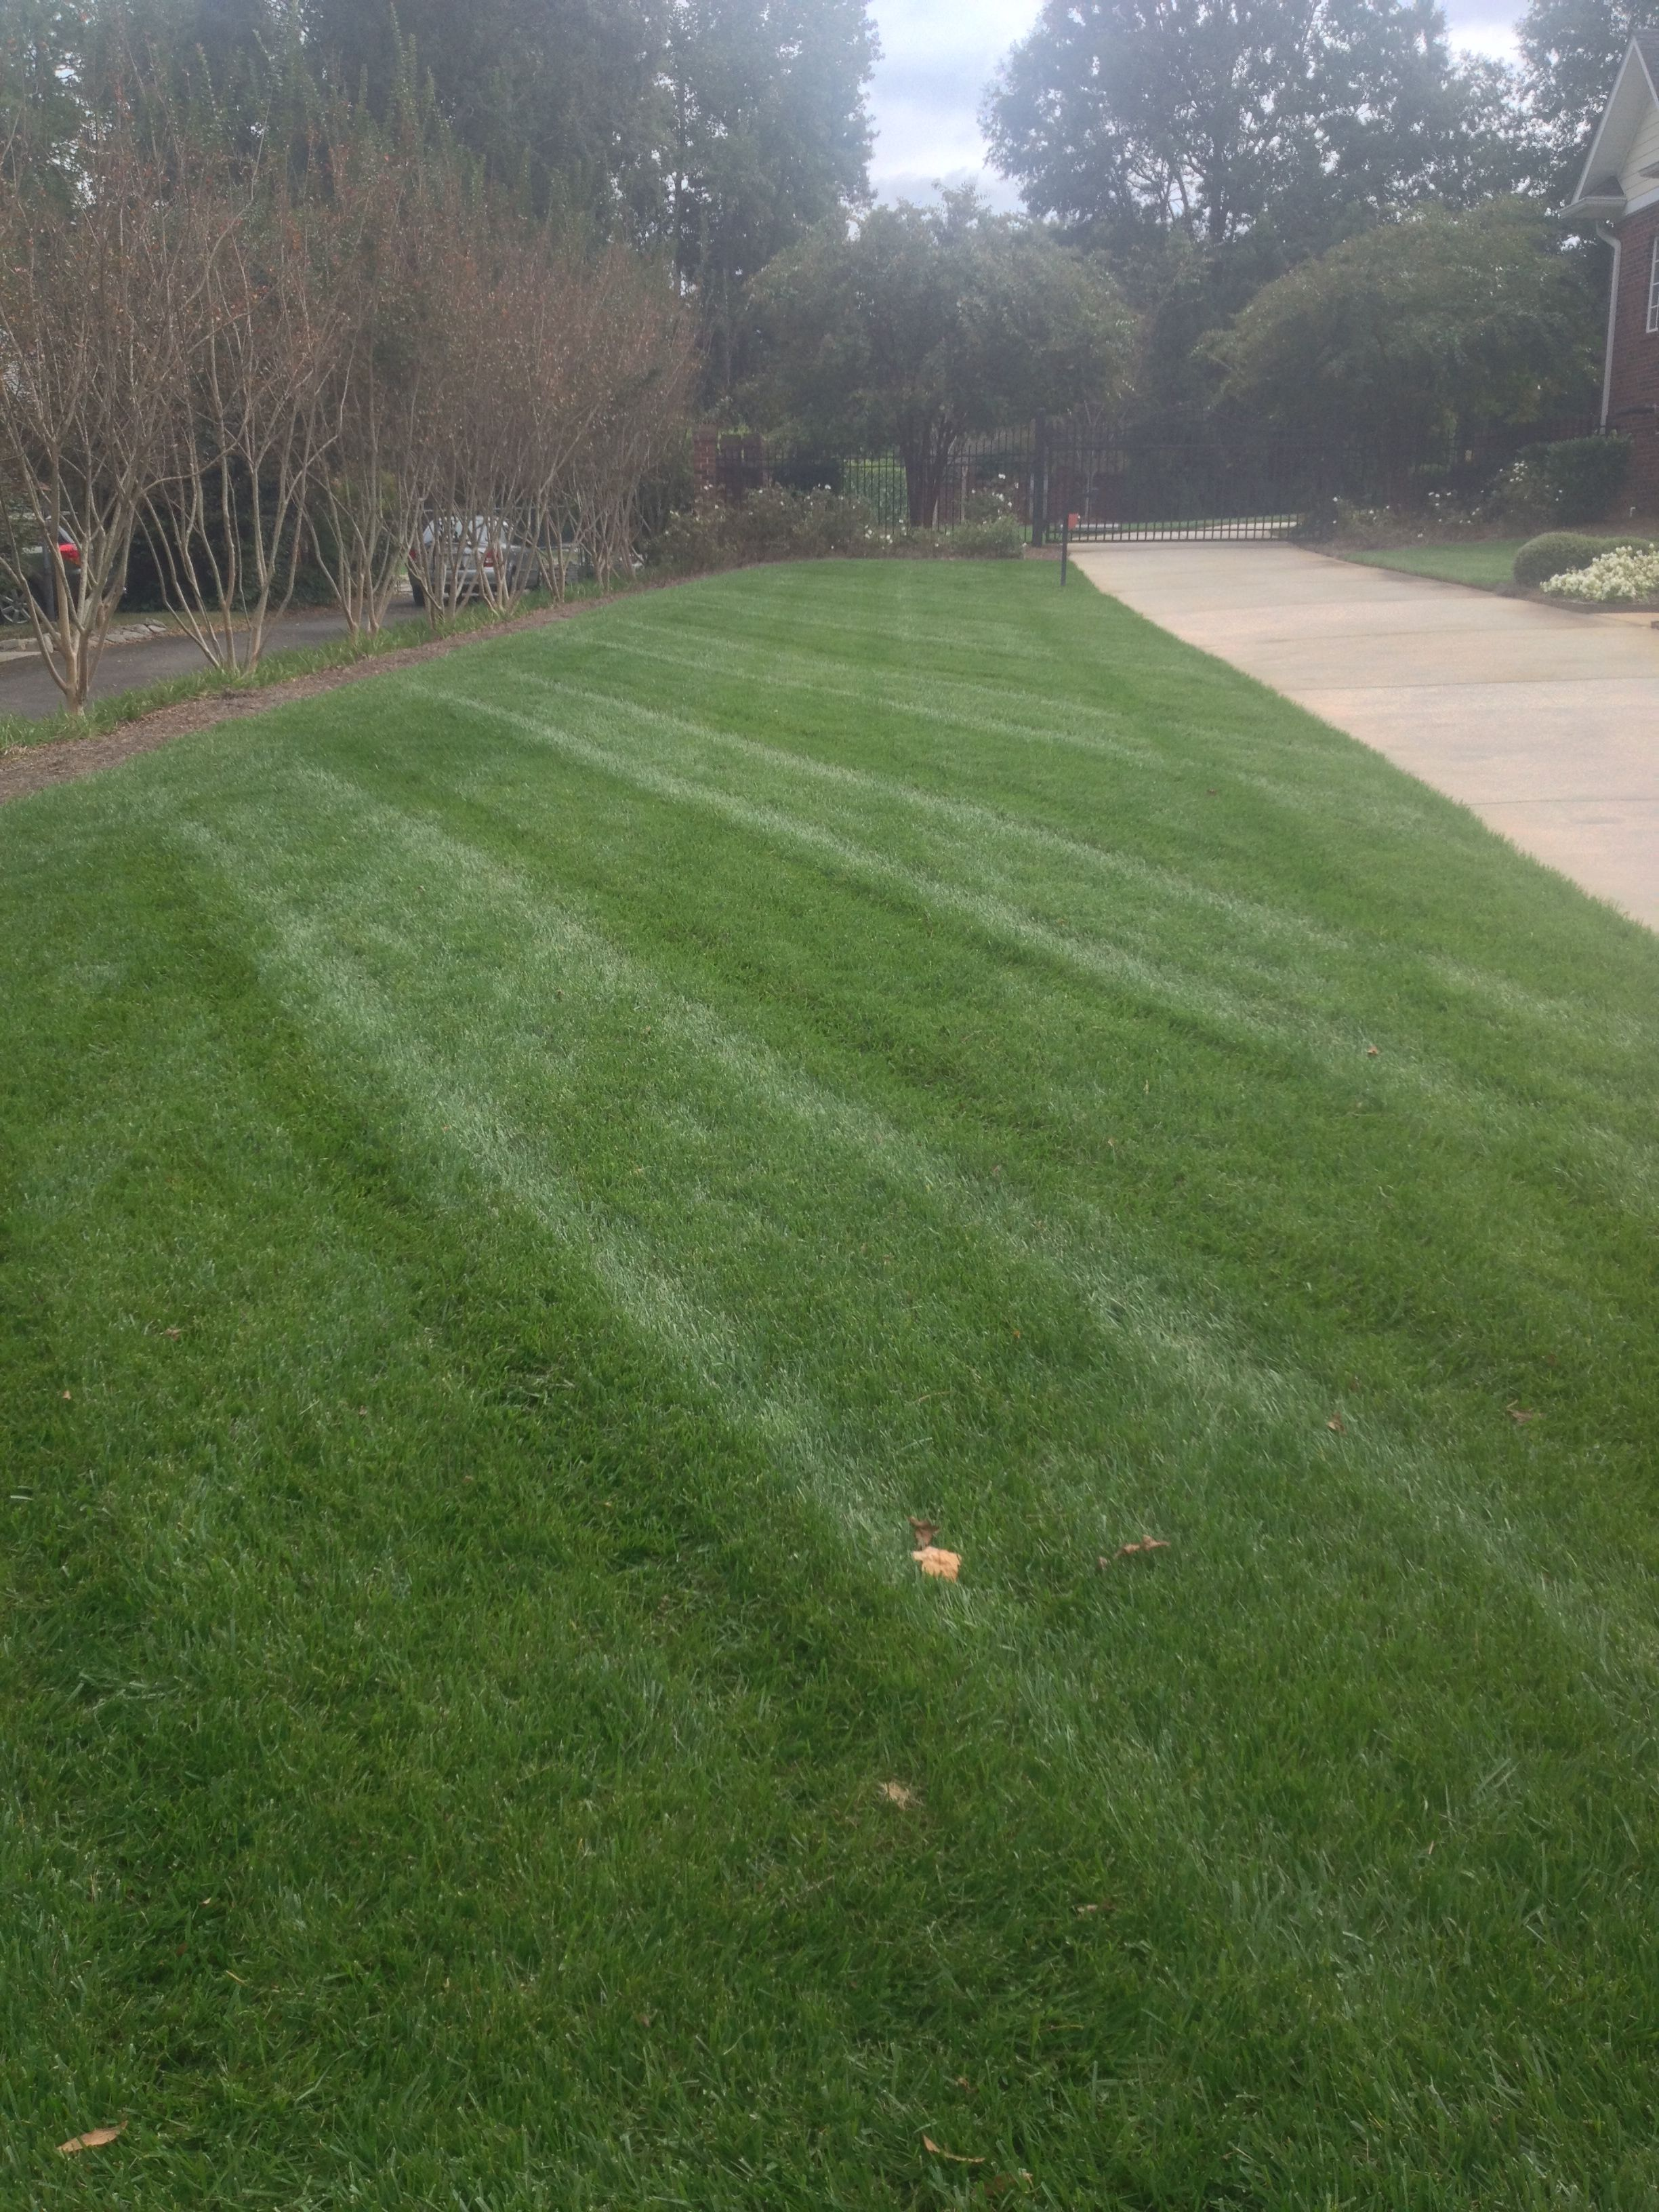 Aeration Seeding Watering Leaf Removal It Is All Very Important When Growing A Fescue Lawn In The South Fescue Lawn Landscape Lawn